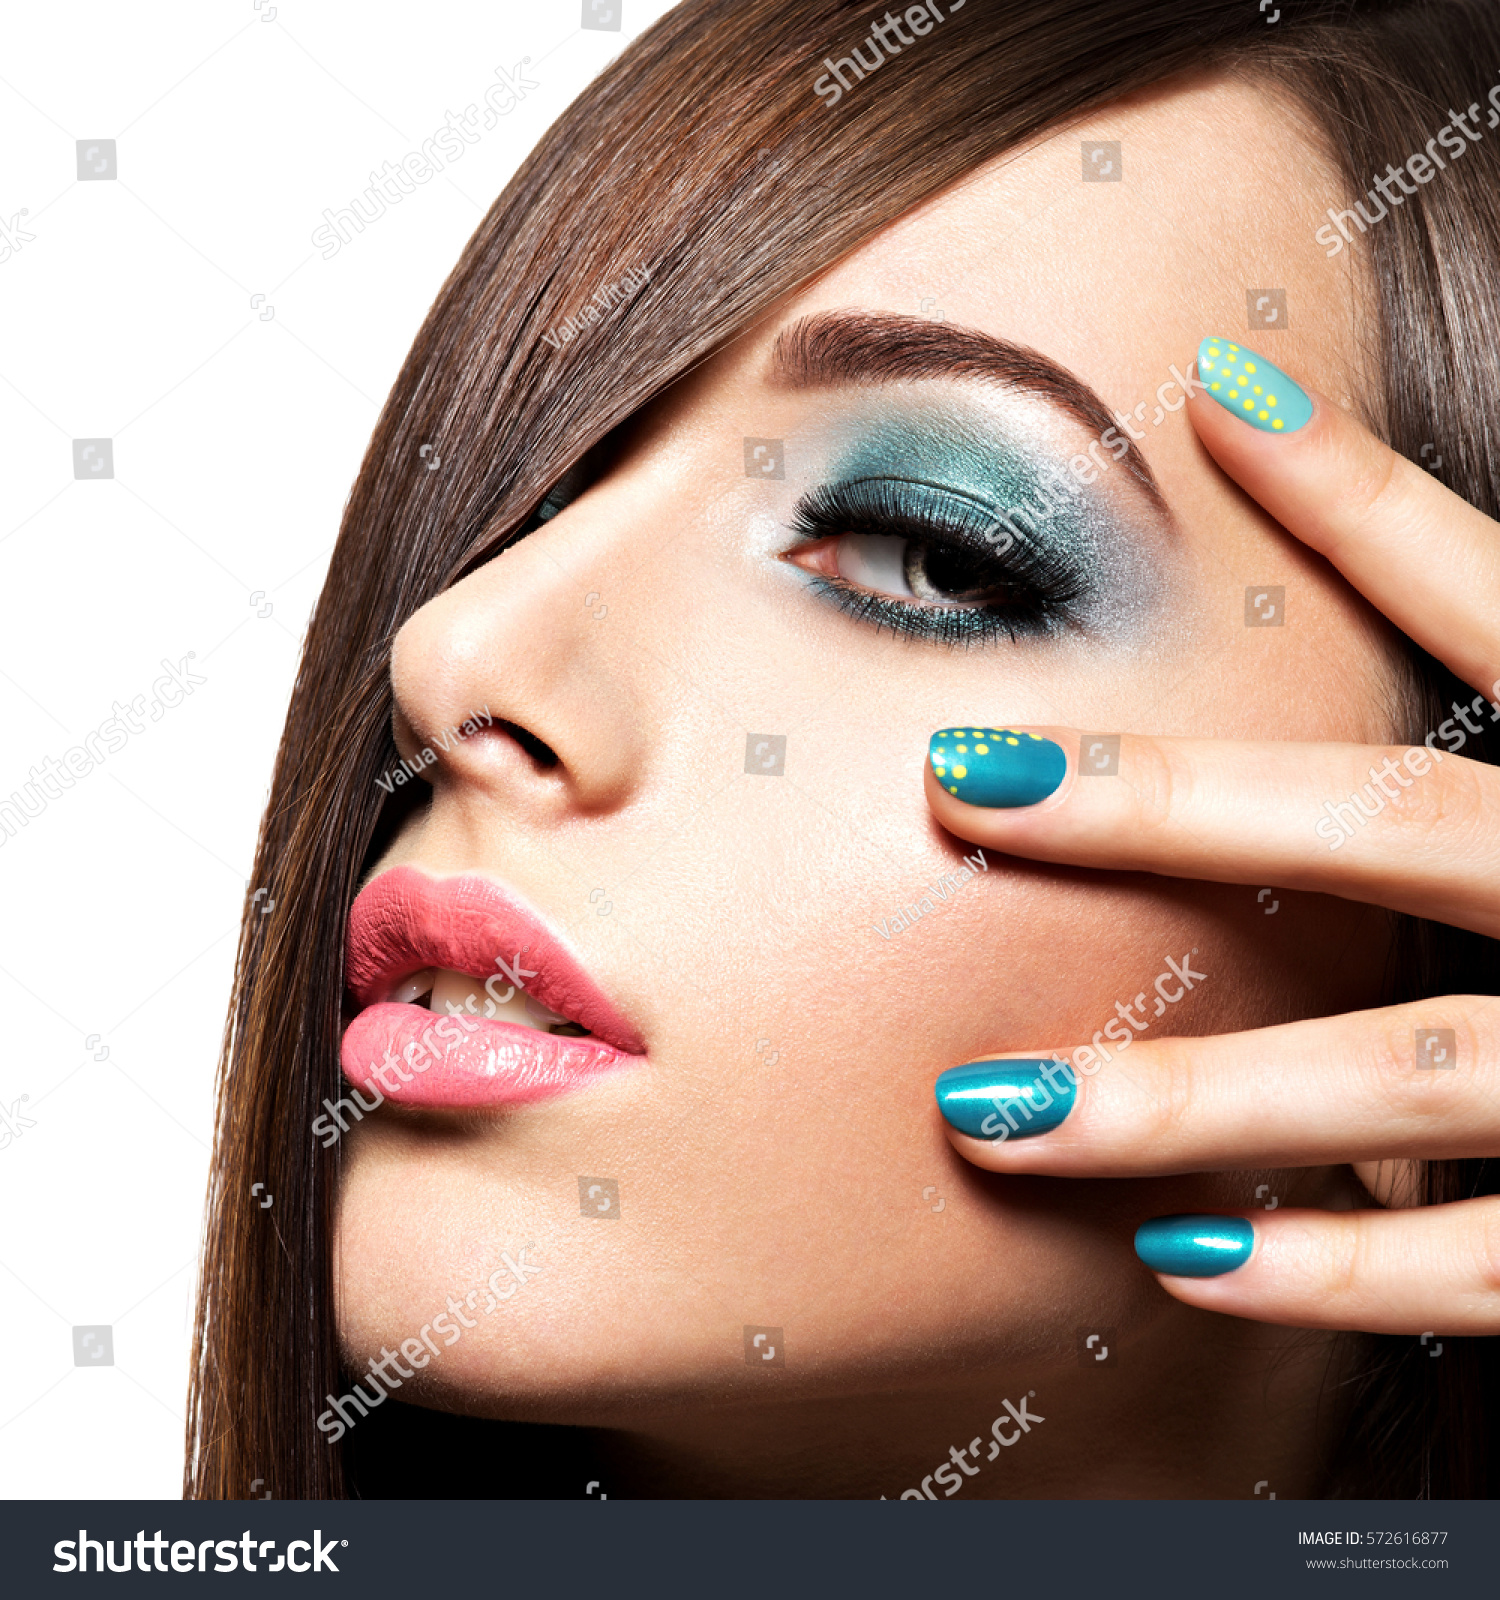 Beautiful Fashion Woman Turquoise Makeup Nails Stock Photo (Royalty ...